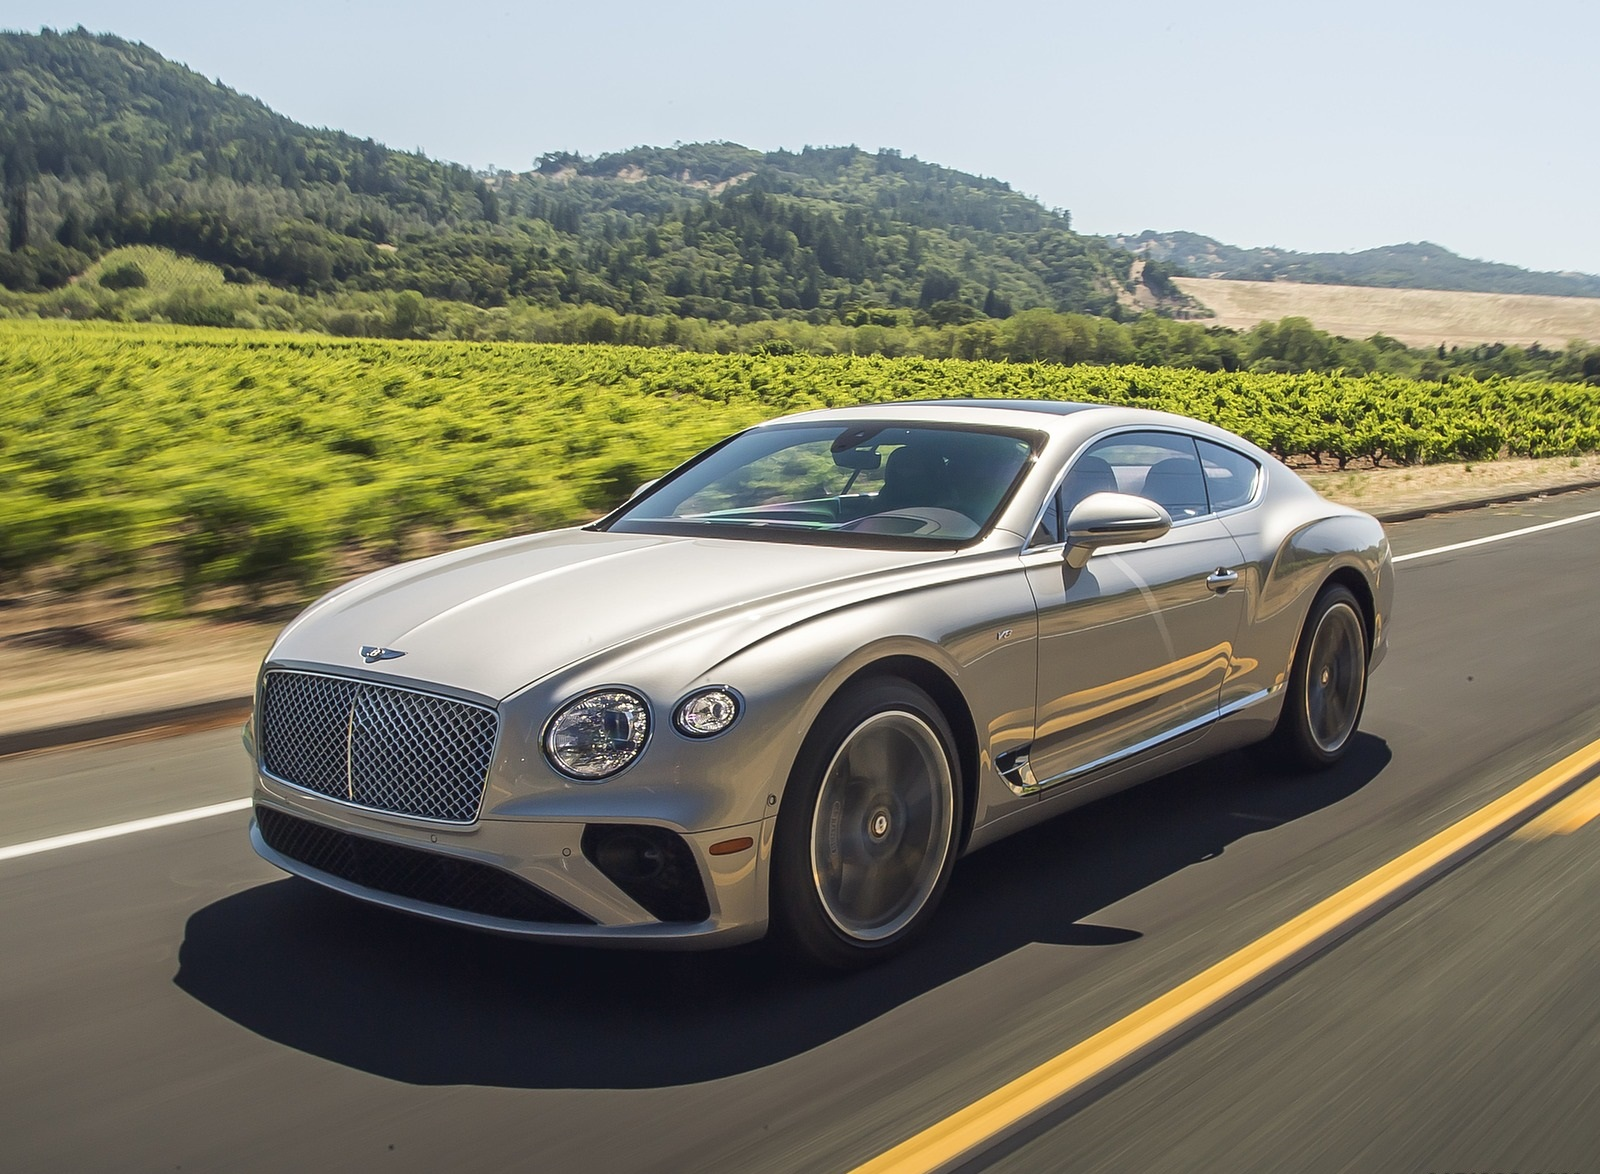 2020 Bentley Continental GT V8 Coupe Front Three-Quarter Wallpapers #33 of 135